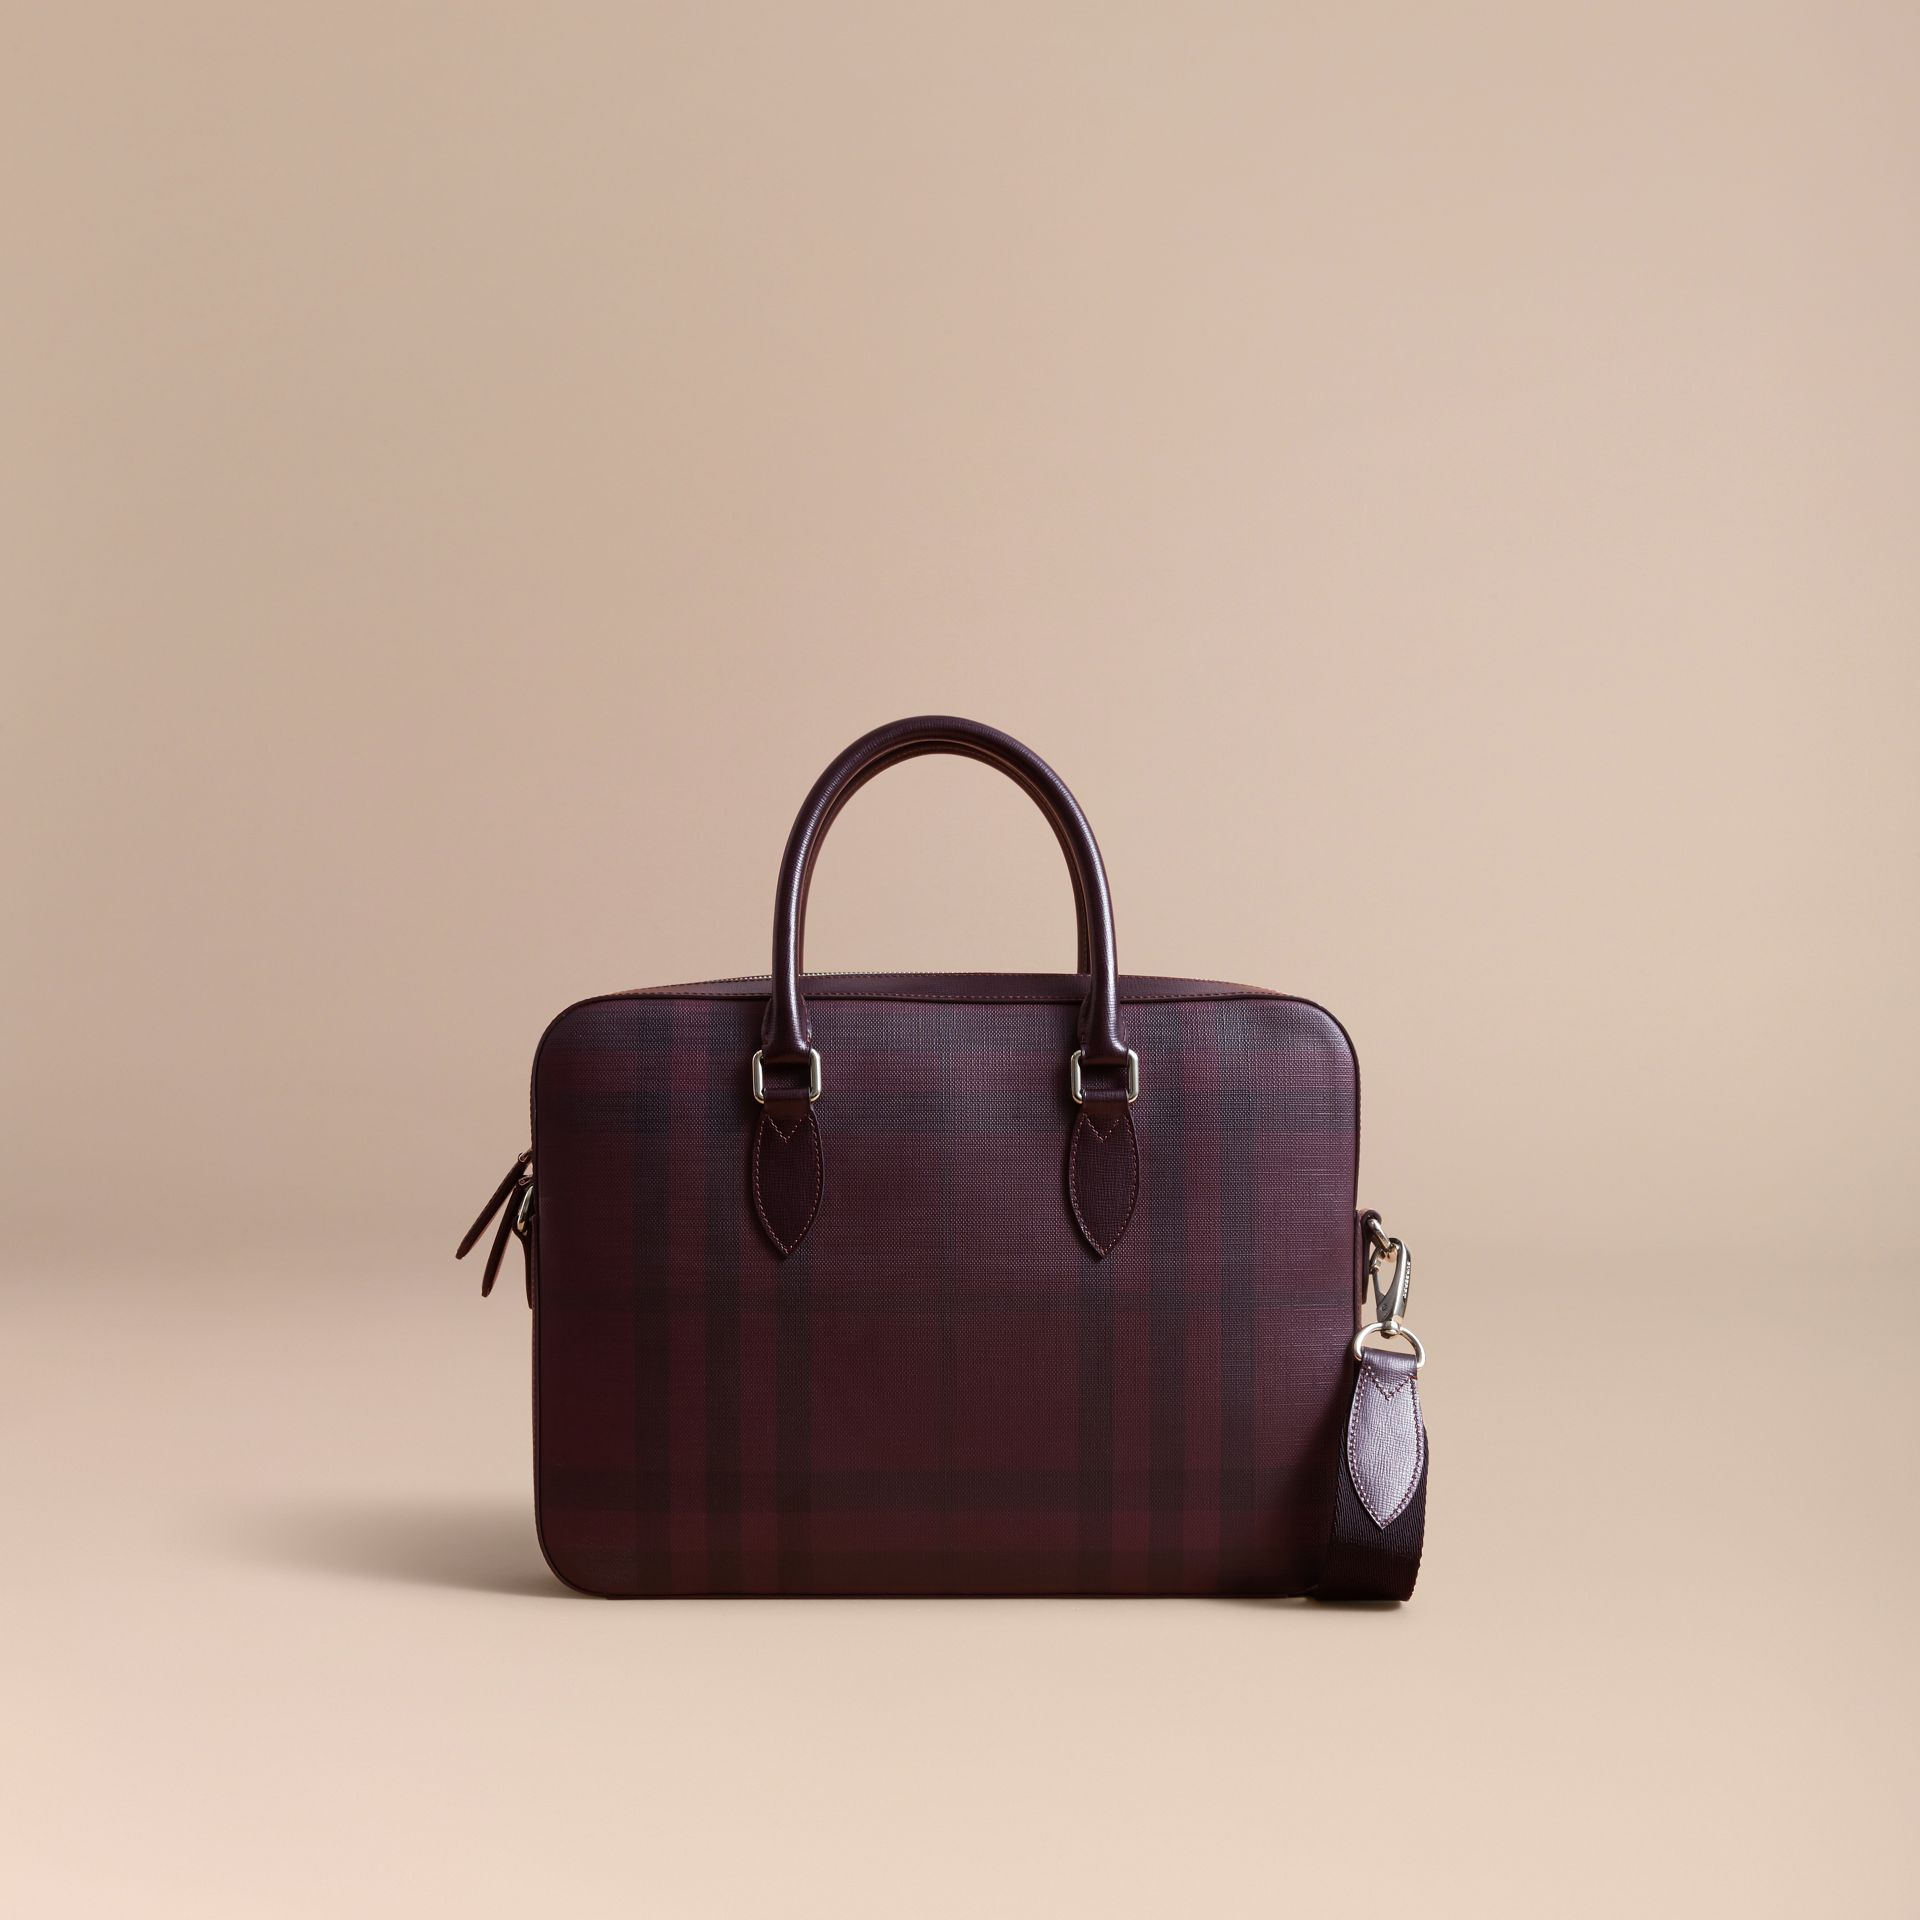 Medium Leather Trim London Check Briefcase in Deep Claret - Men | Burberry Canada - gallery image 8